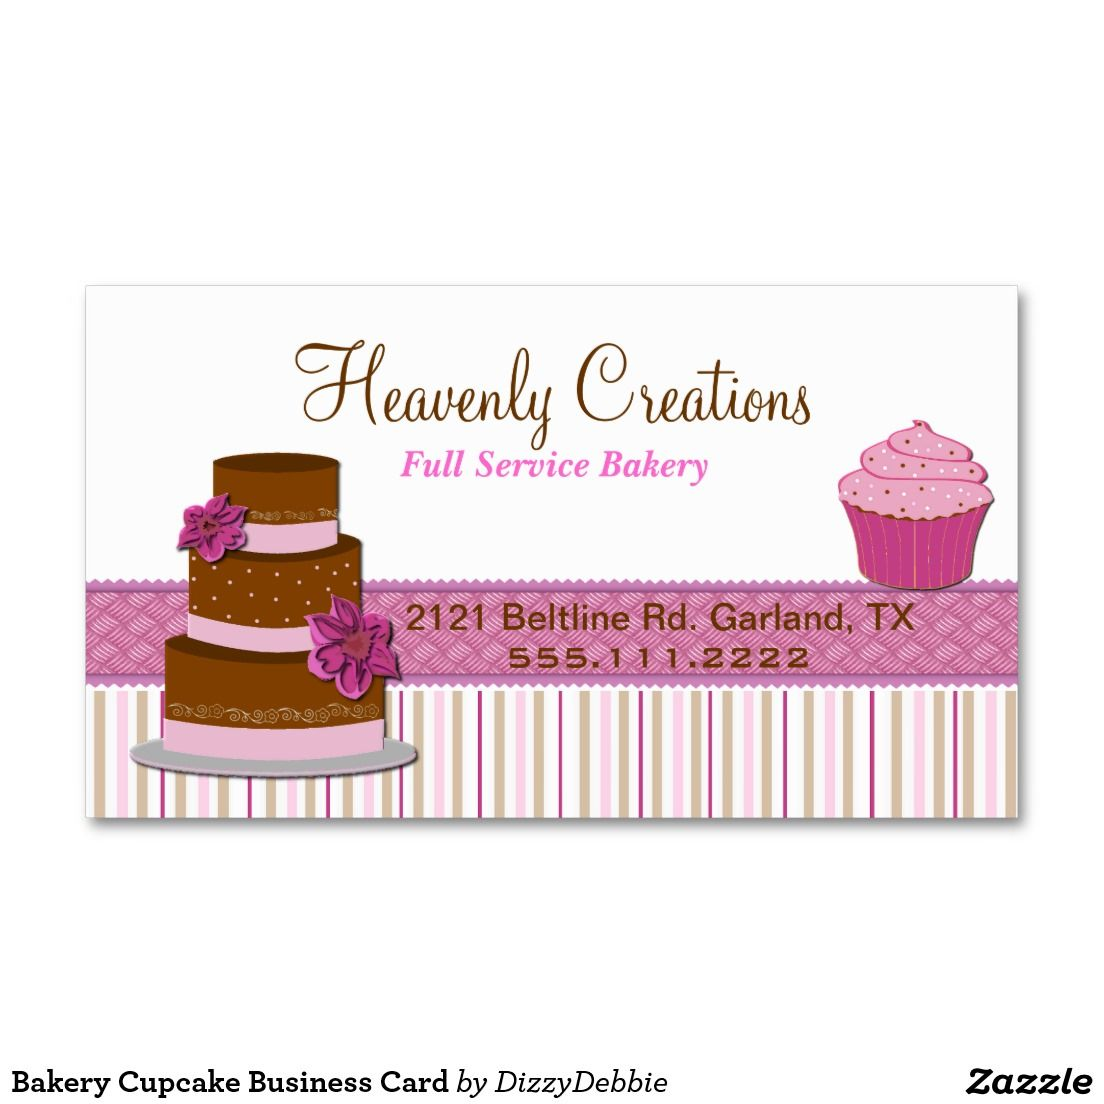 Bakery Cupcake Business Card | Pinterest | Business cards and Business